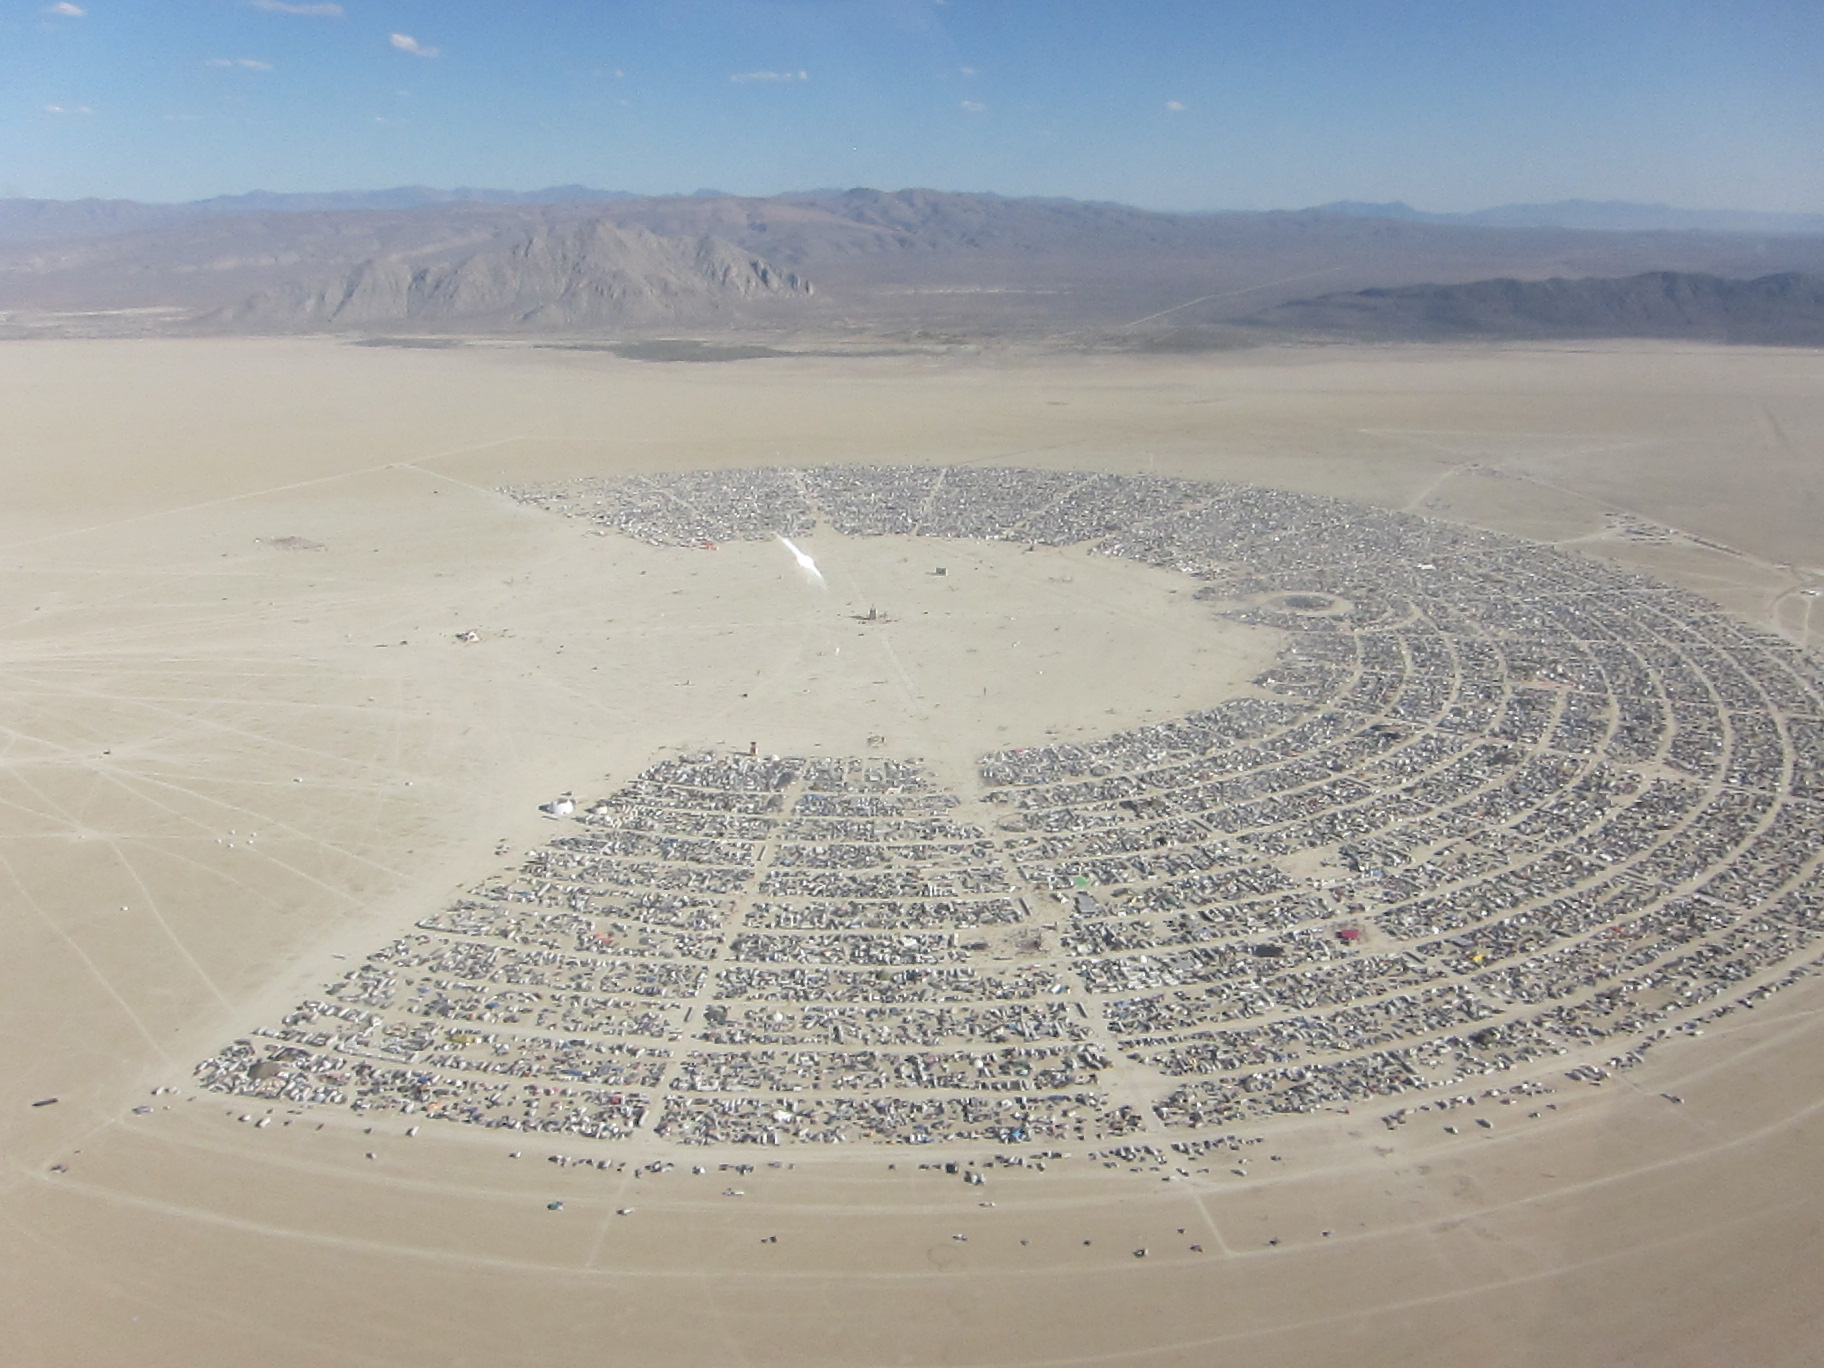 Burning Man aerial ... gear and heading out to Burning man in the Nevada desert this year!